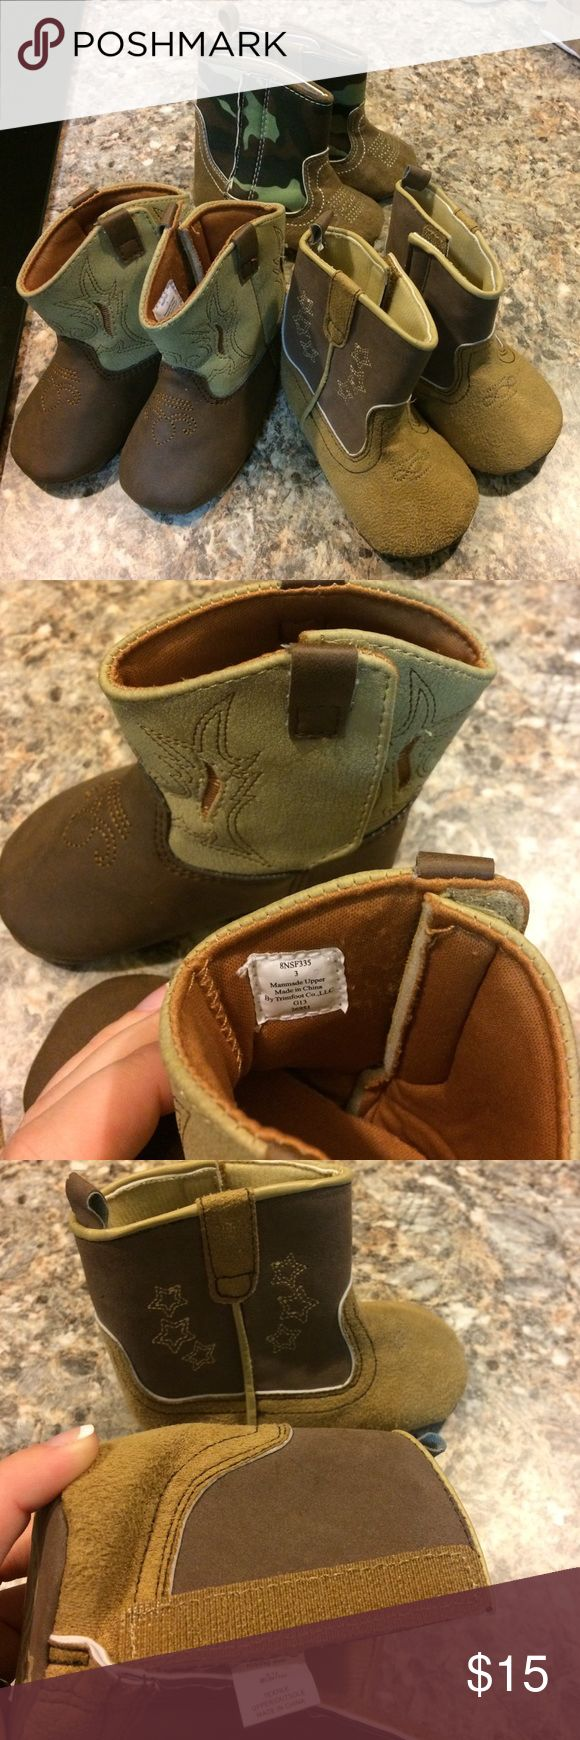 3 pairs of infant boys cowboy boots. 3 pair of infants cowboy boots. Never worn. Excellent condition. First pair is size 3. Last two pair are 9-12 months. rising star Shoes Boots